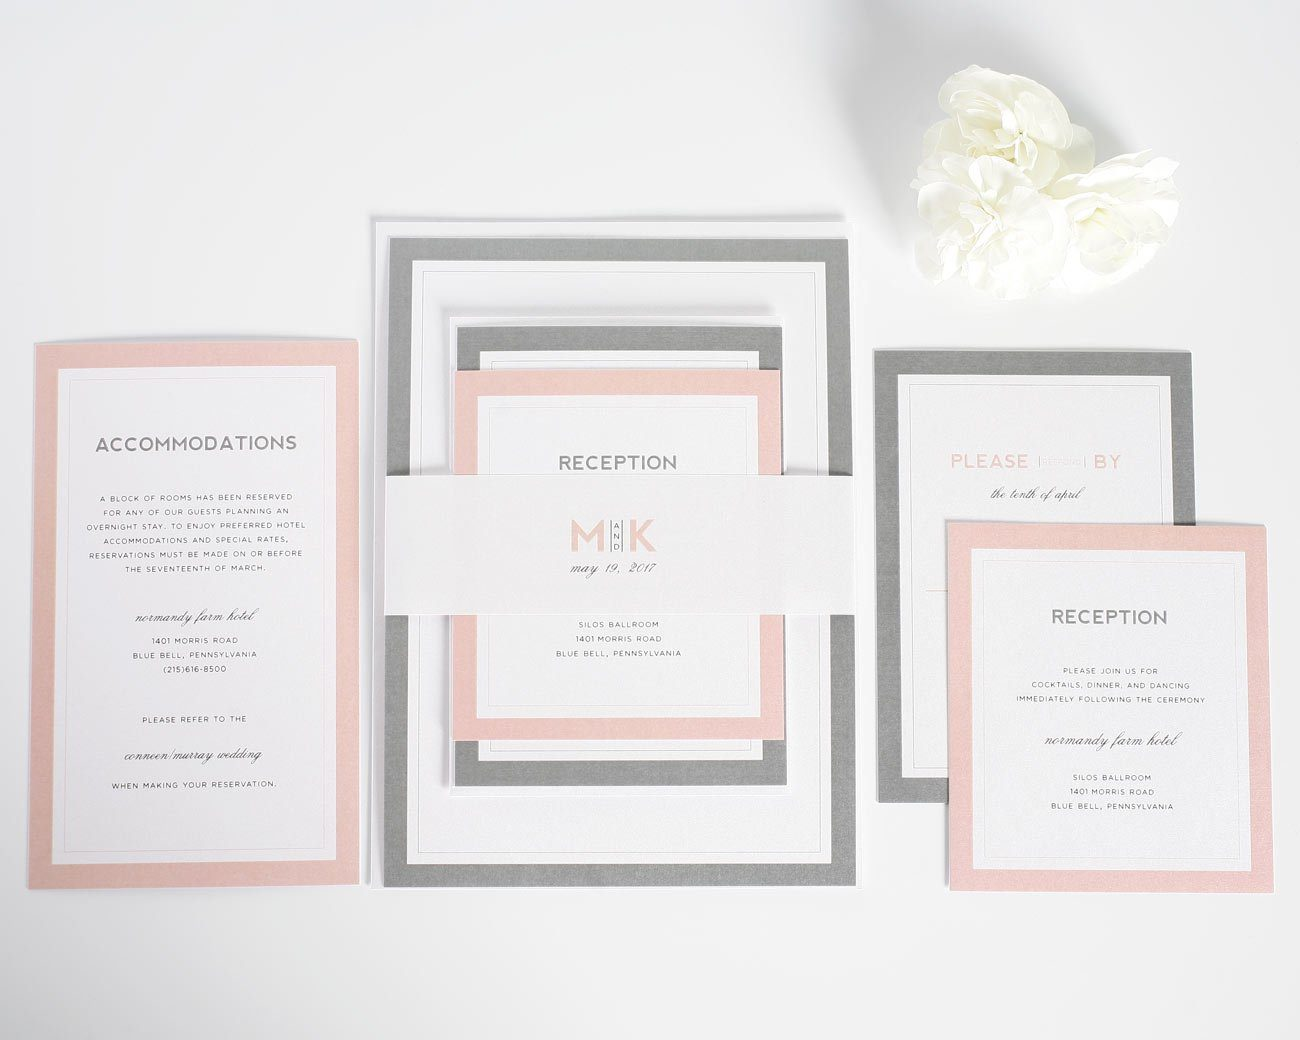 Wedding Invitations Overnight Shipping - 4k Wallpapers